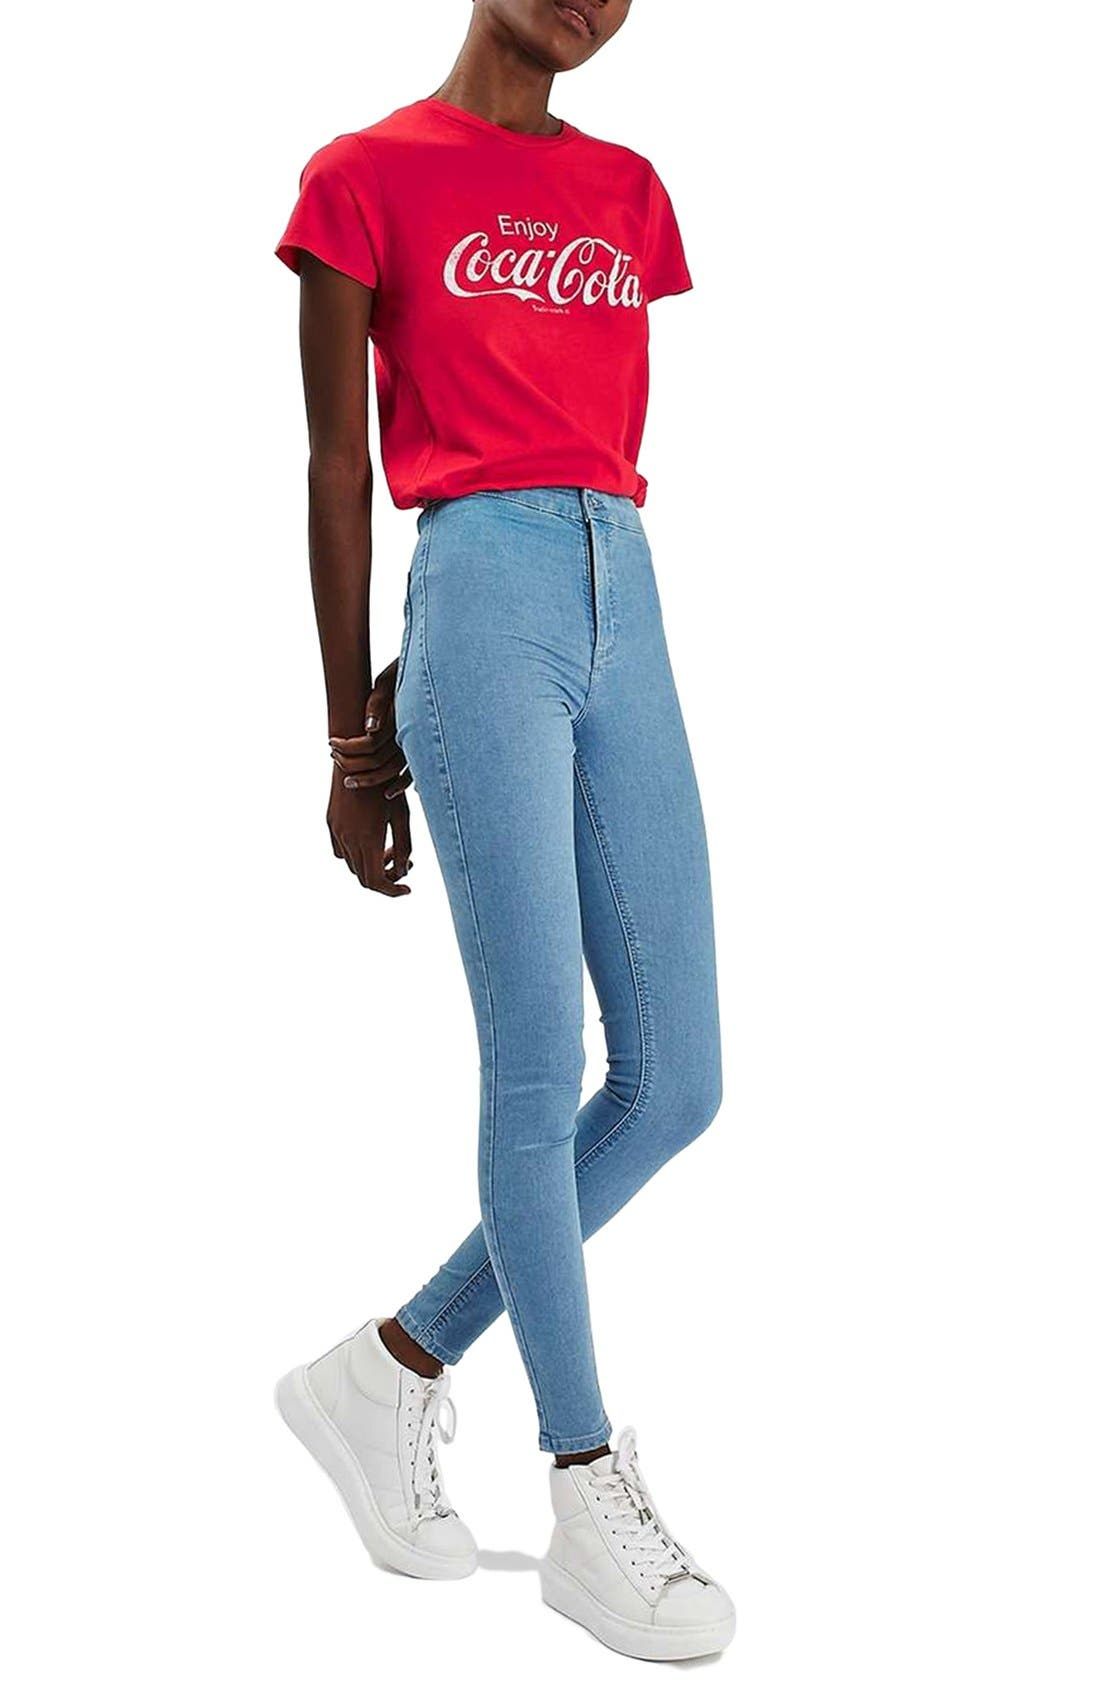 Alternate Image 2  - Topshop 'Coca Cola' Graphic Tee